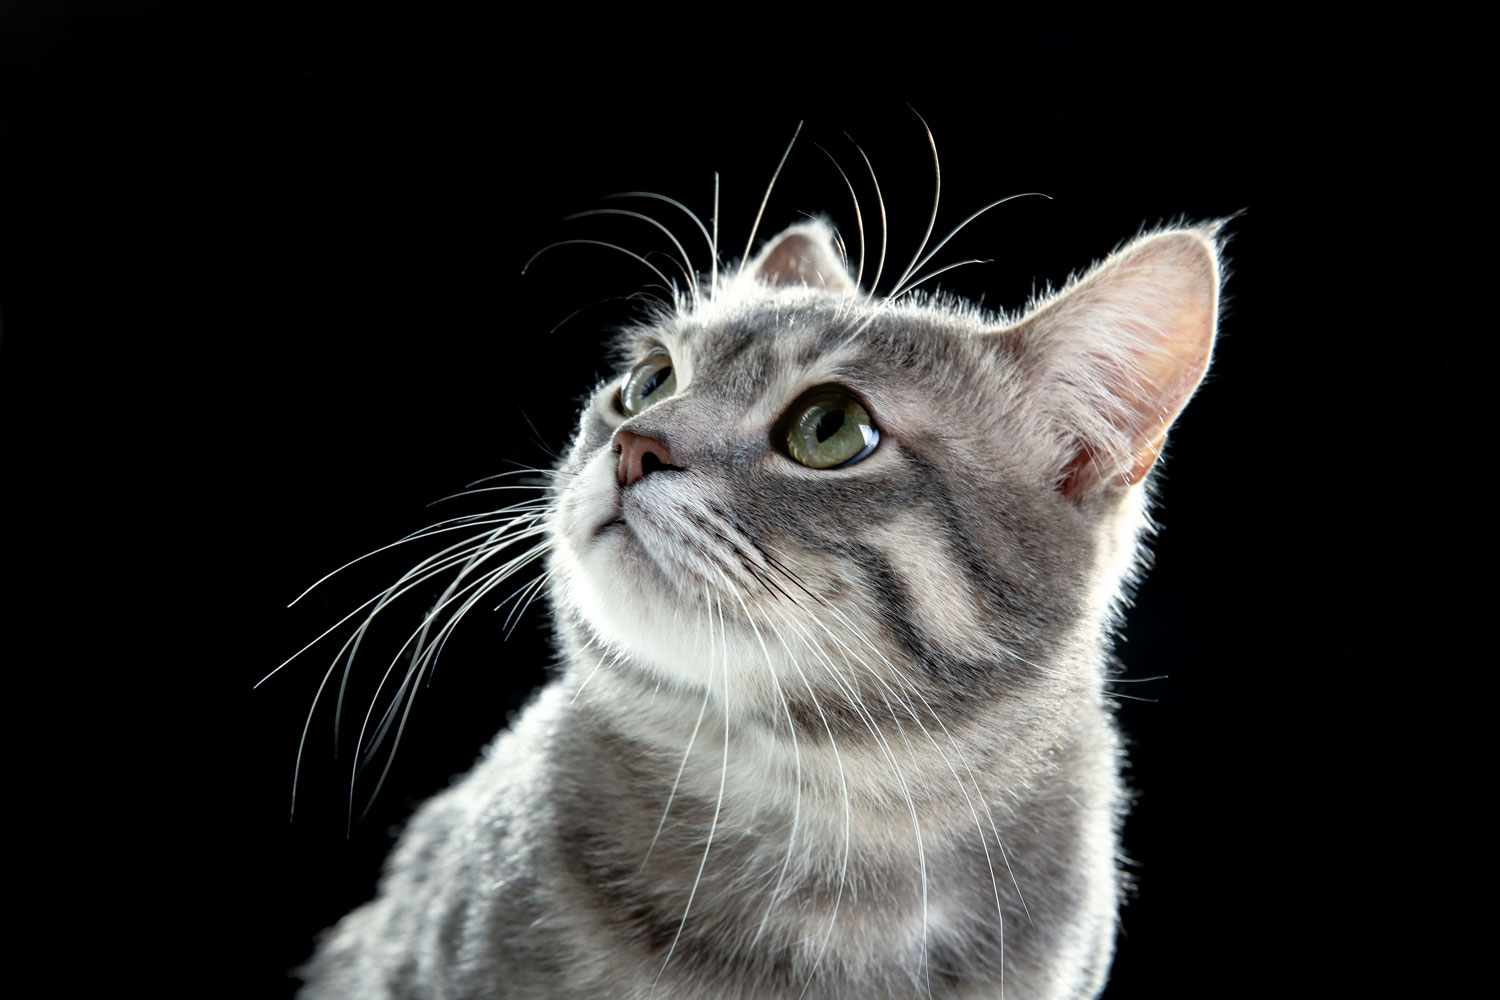 A beautiful British shorthair sitting and staring at something on a dark background